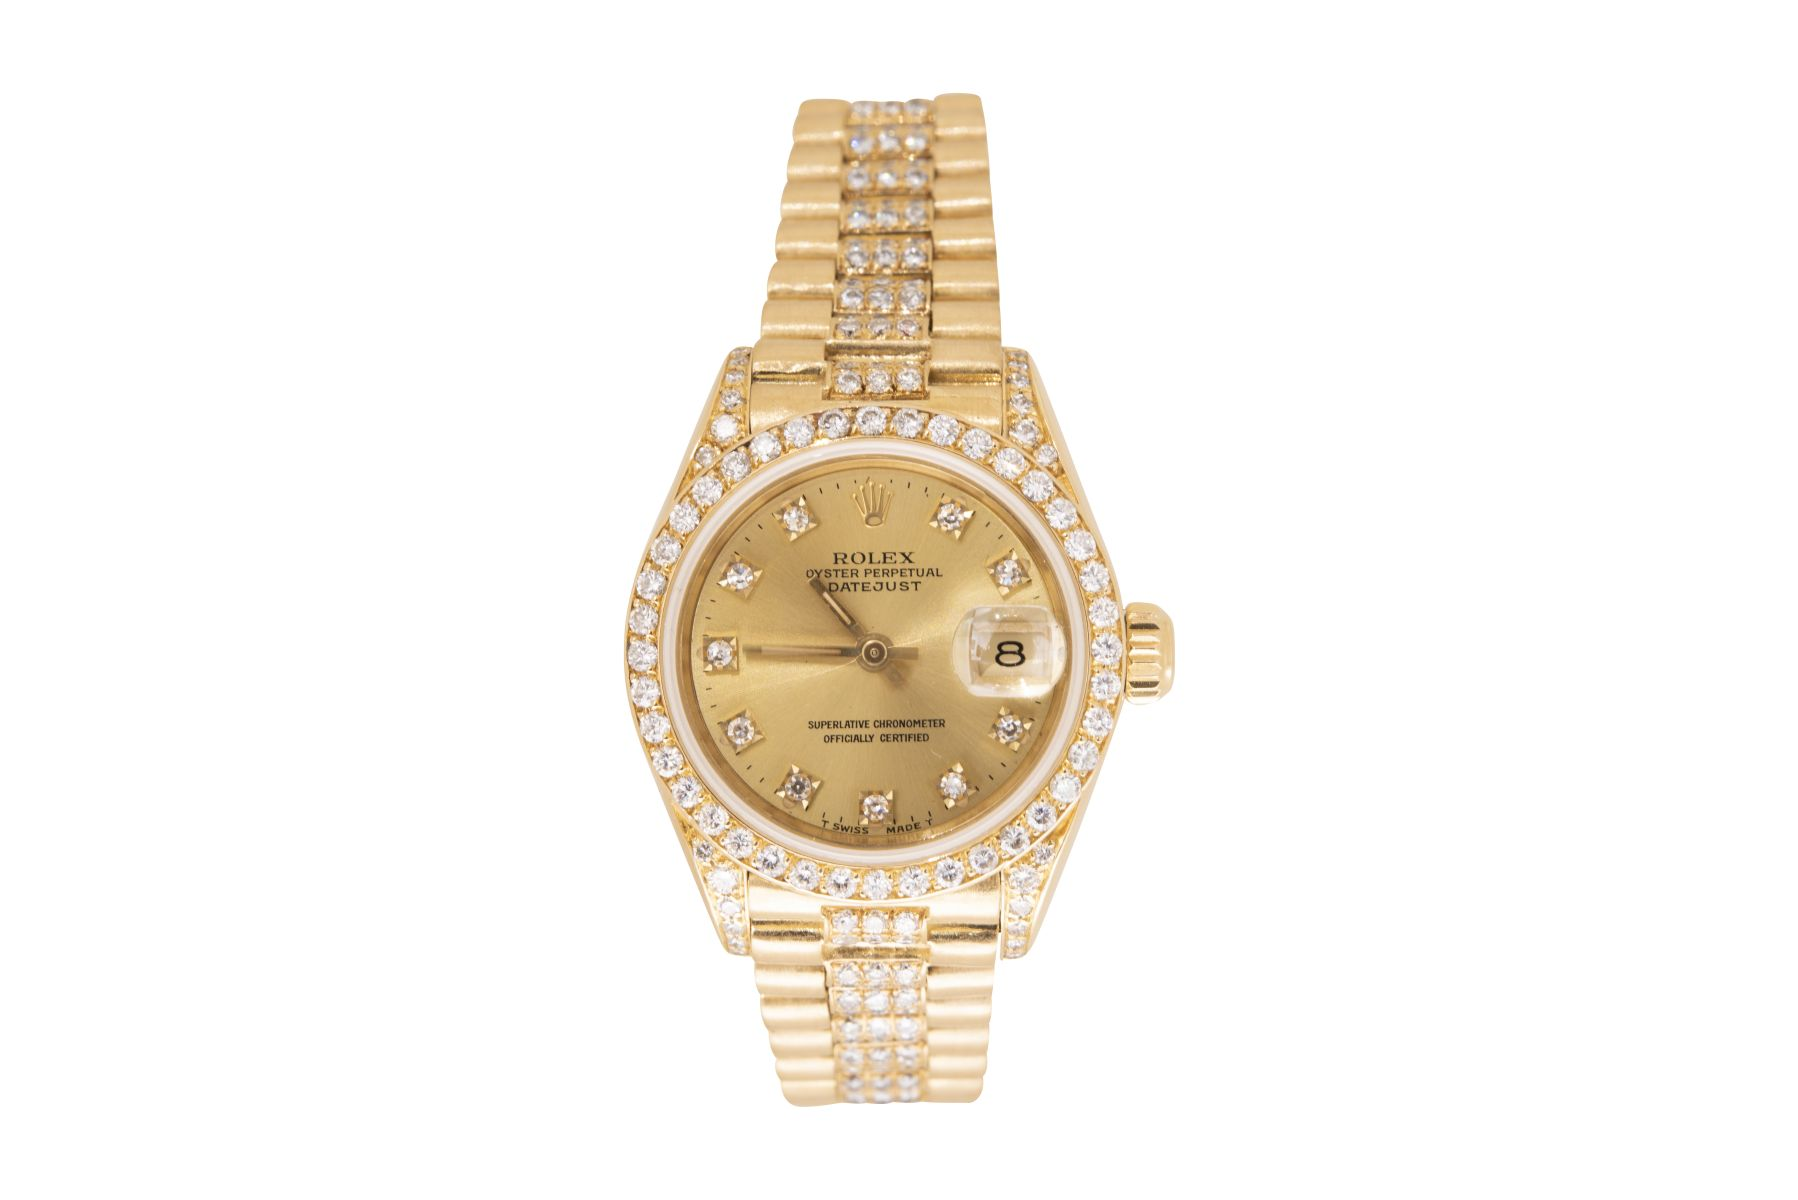 #111 Rolex Lady Datejust Diamond Full Set | Rolex Lady Datejust Diamond Full Set Image